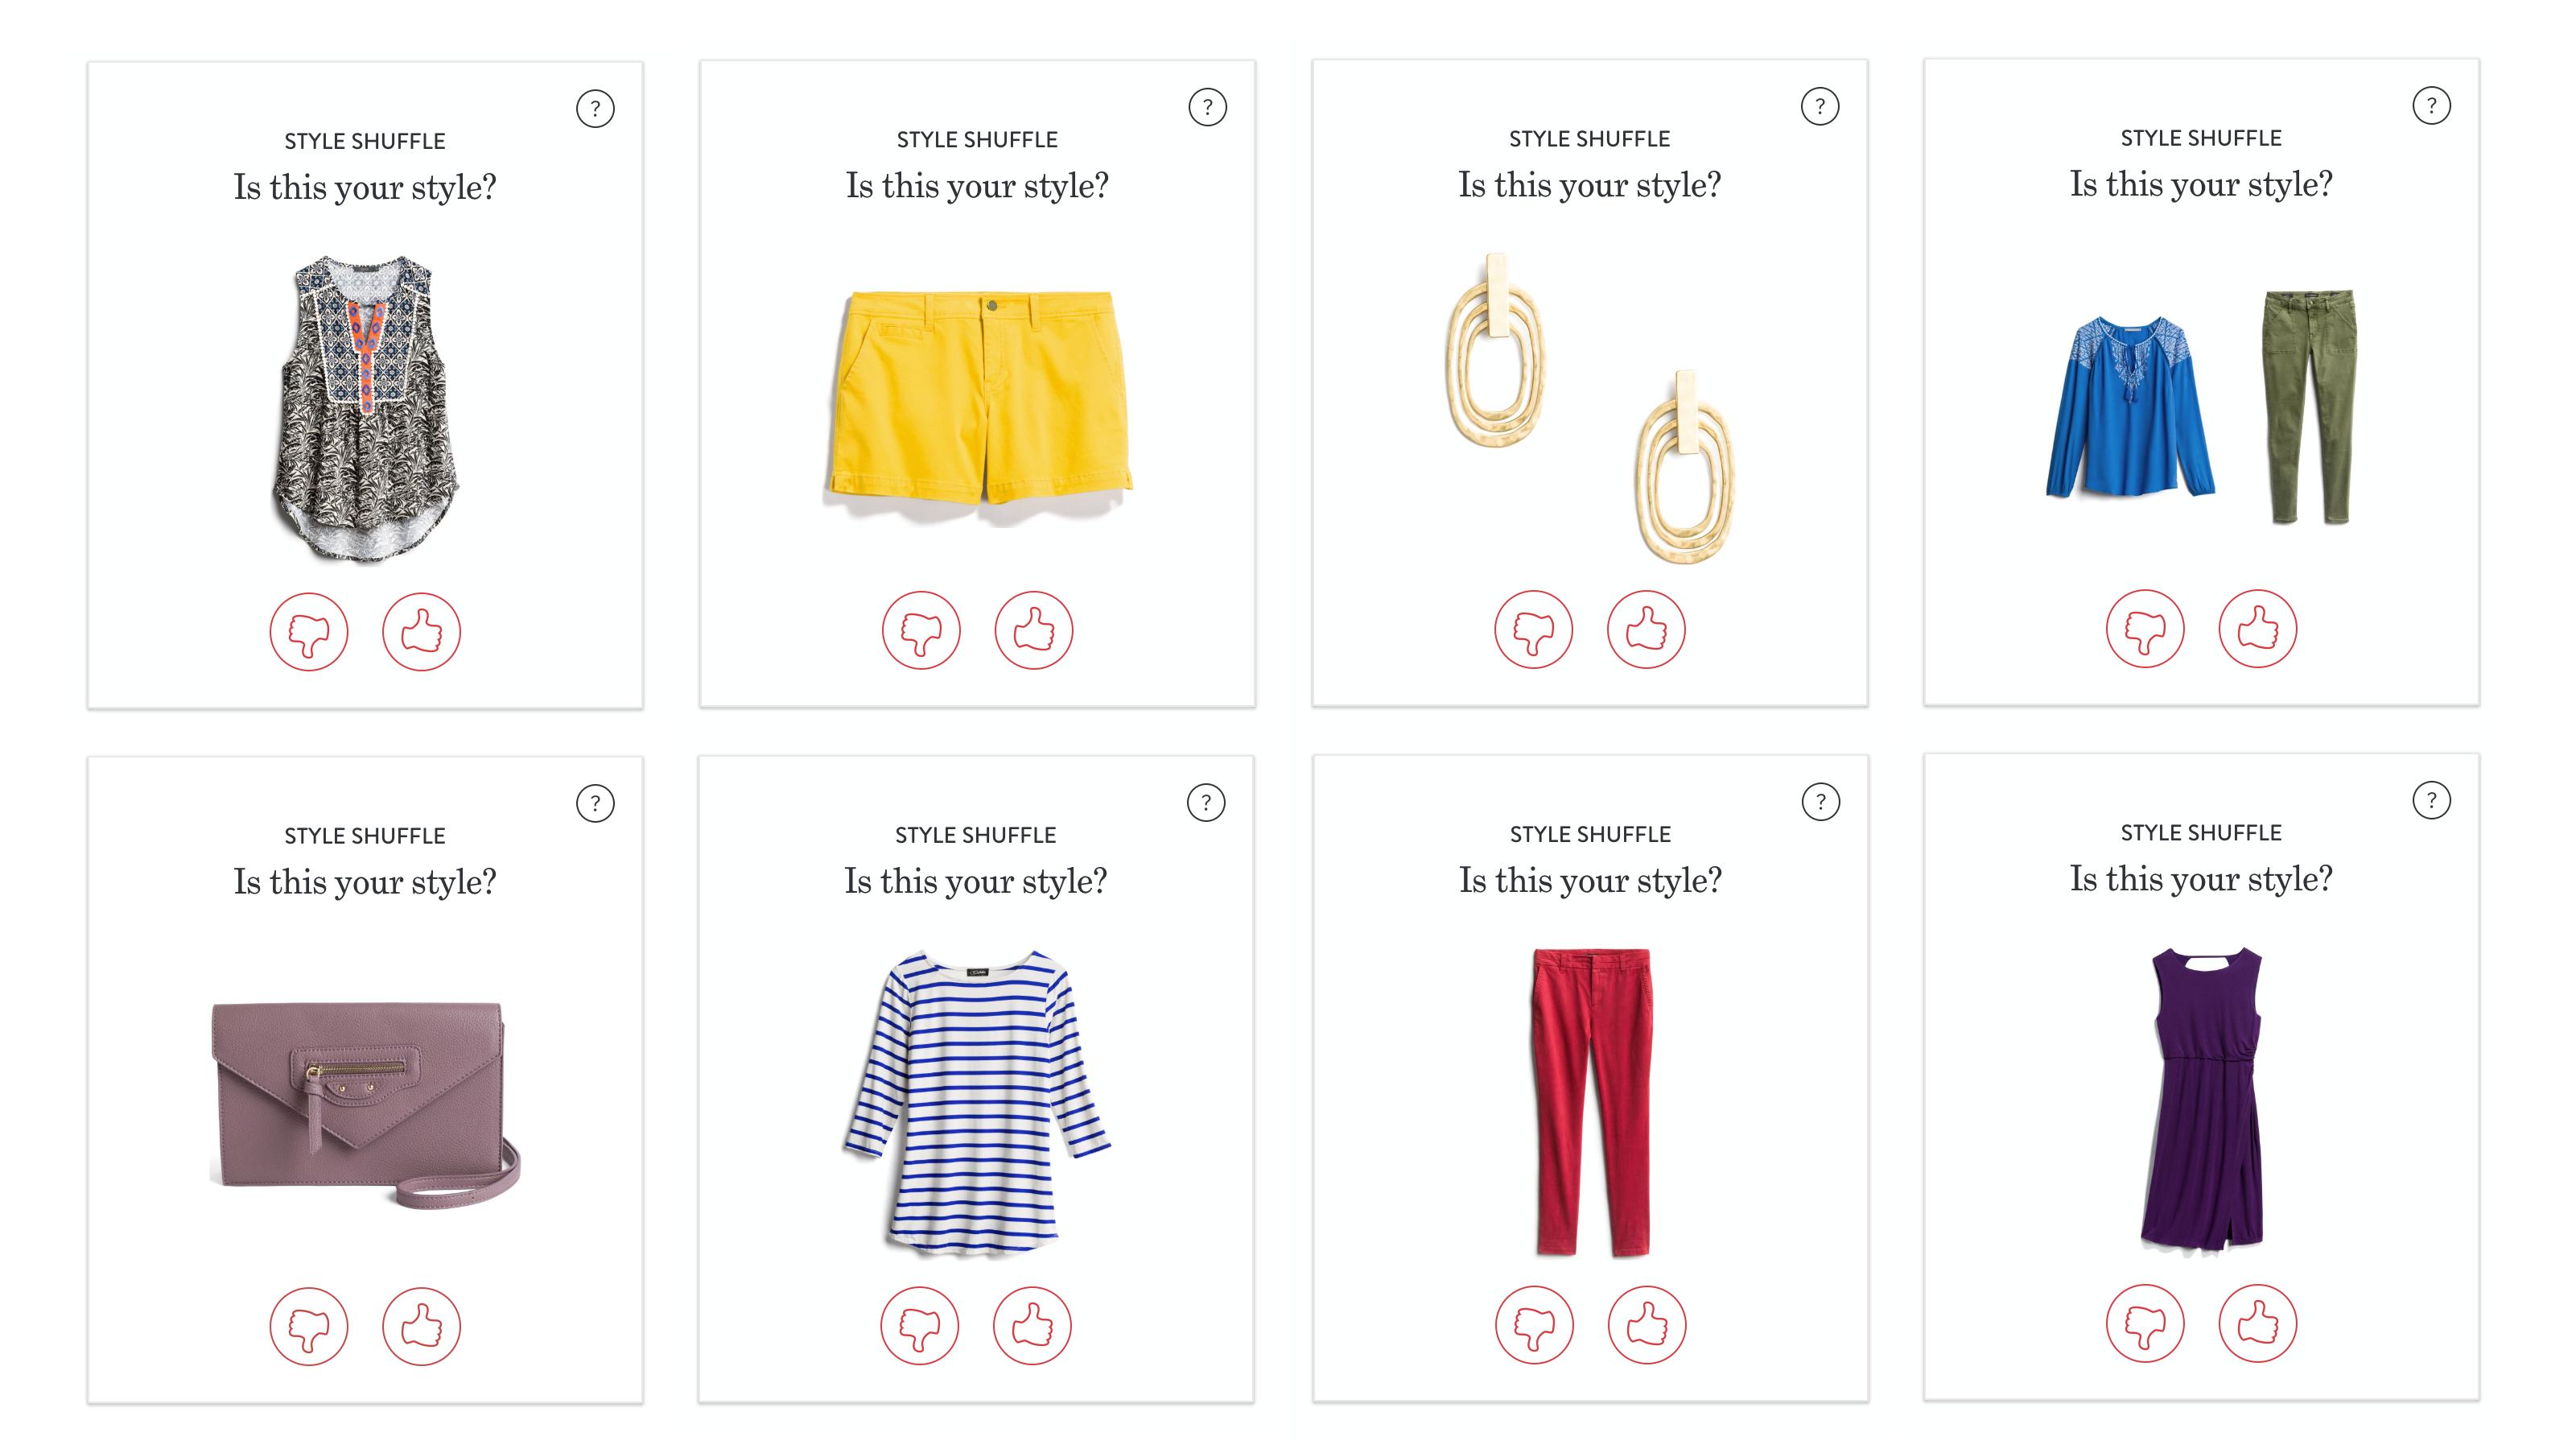 How Stitch Fix's Style Shuffle learns your style — Quartzy